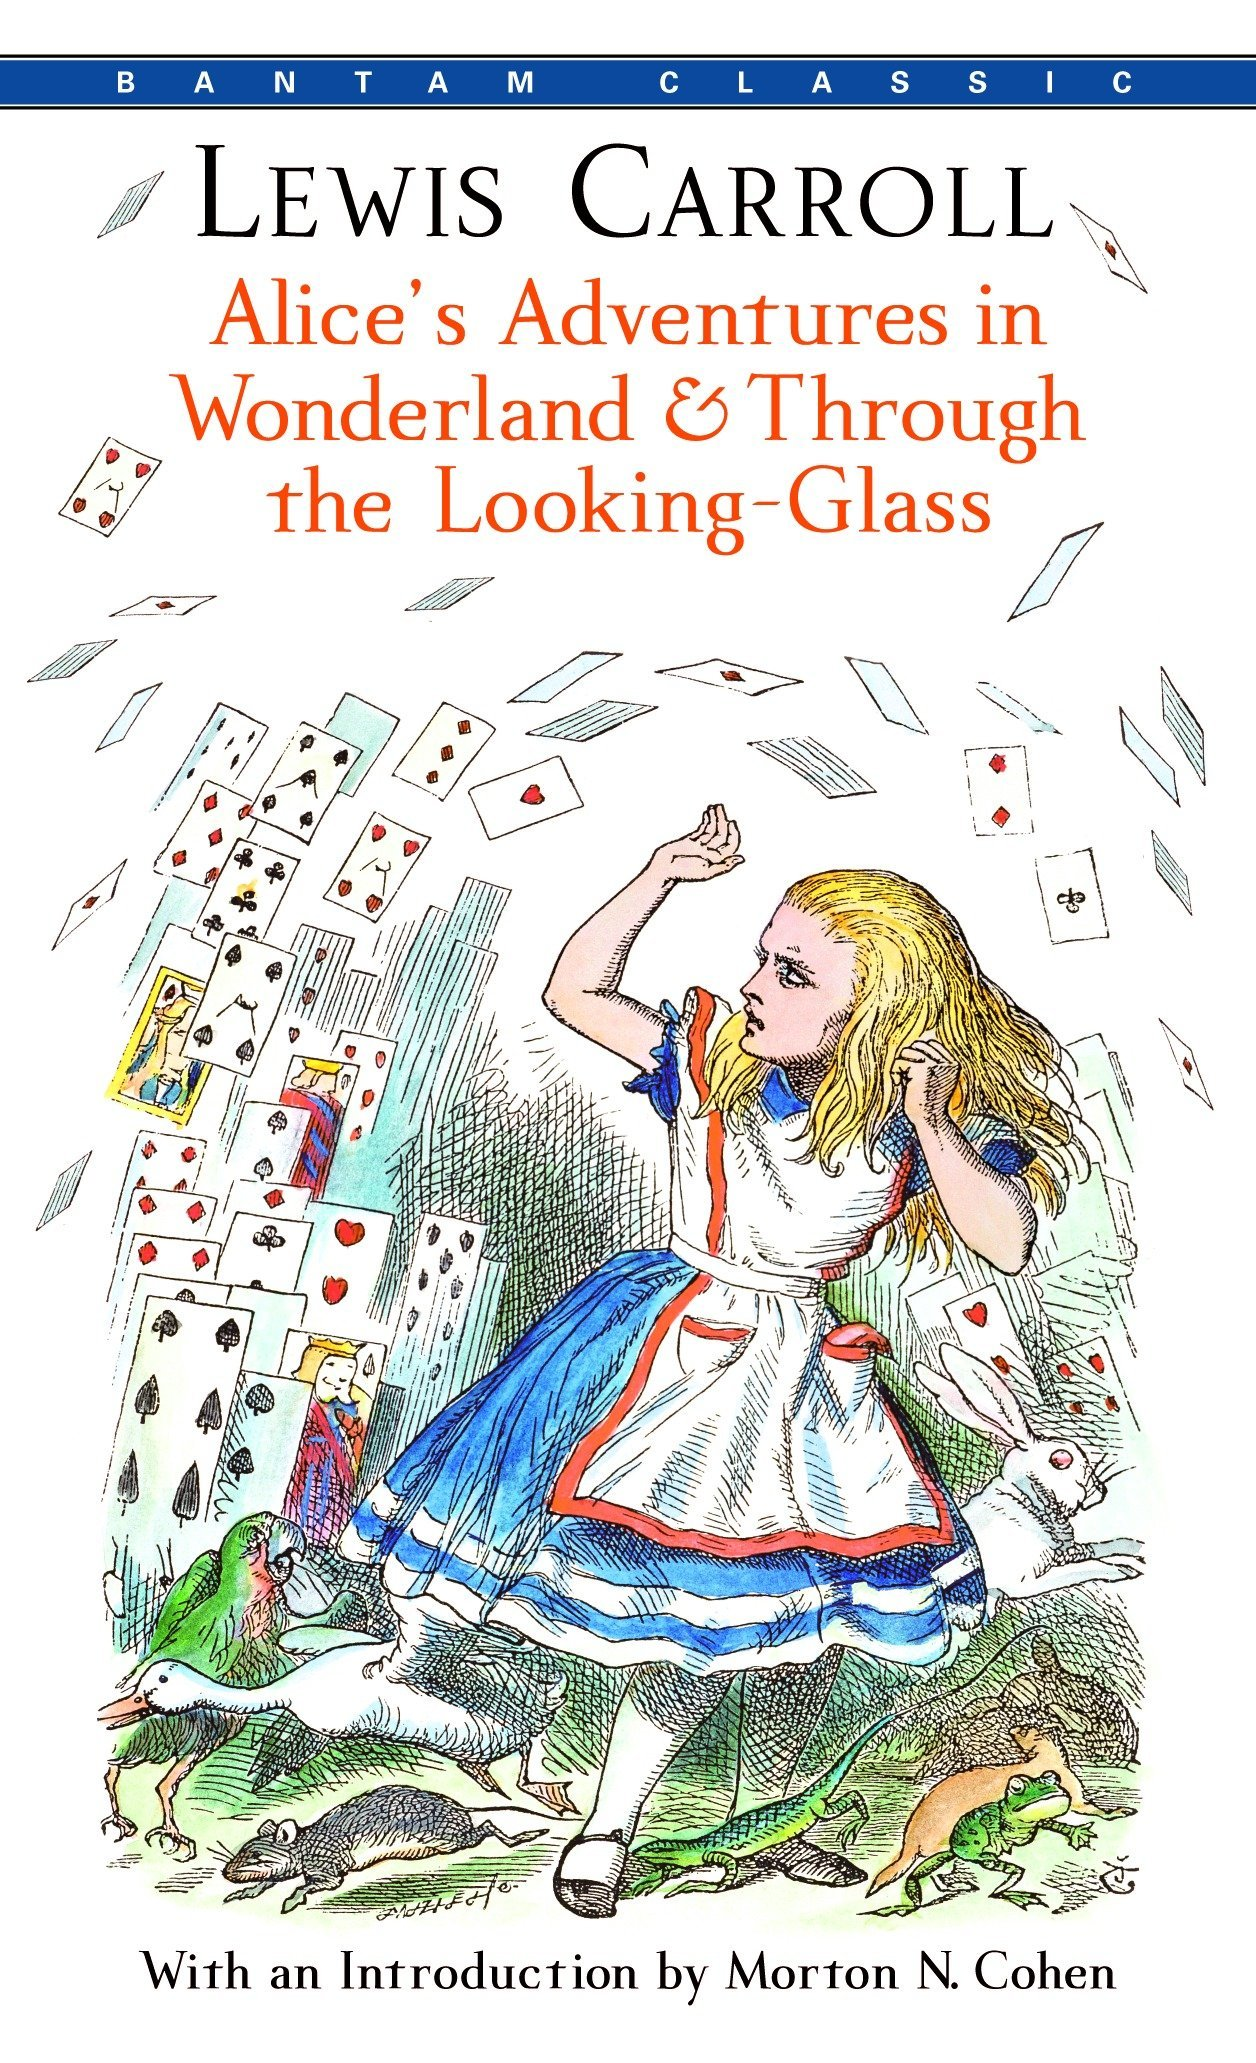 Alices adventures in wonderland through the looking glass bantam classics lewis carroll 9780553213454 amazon com books